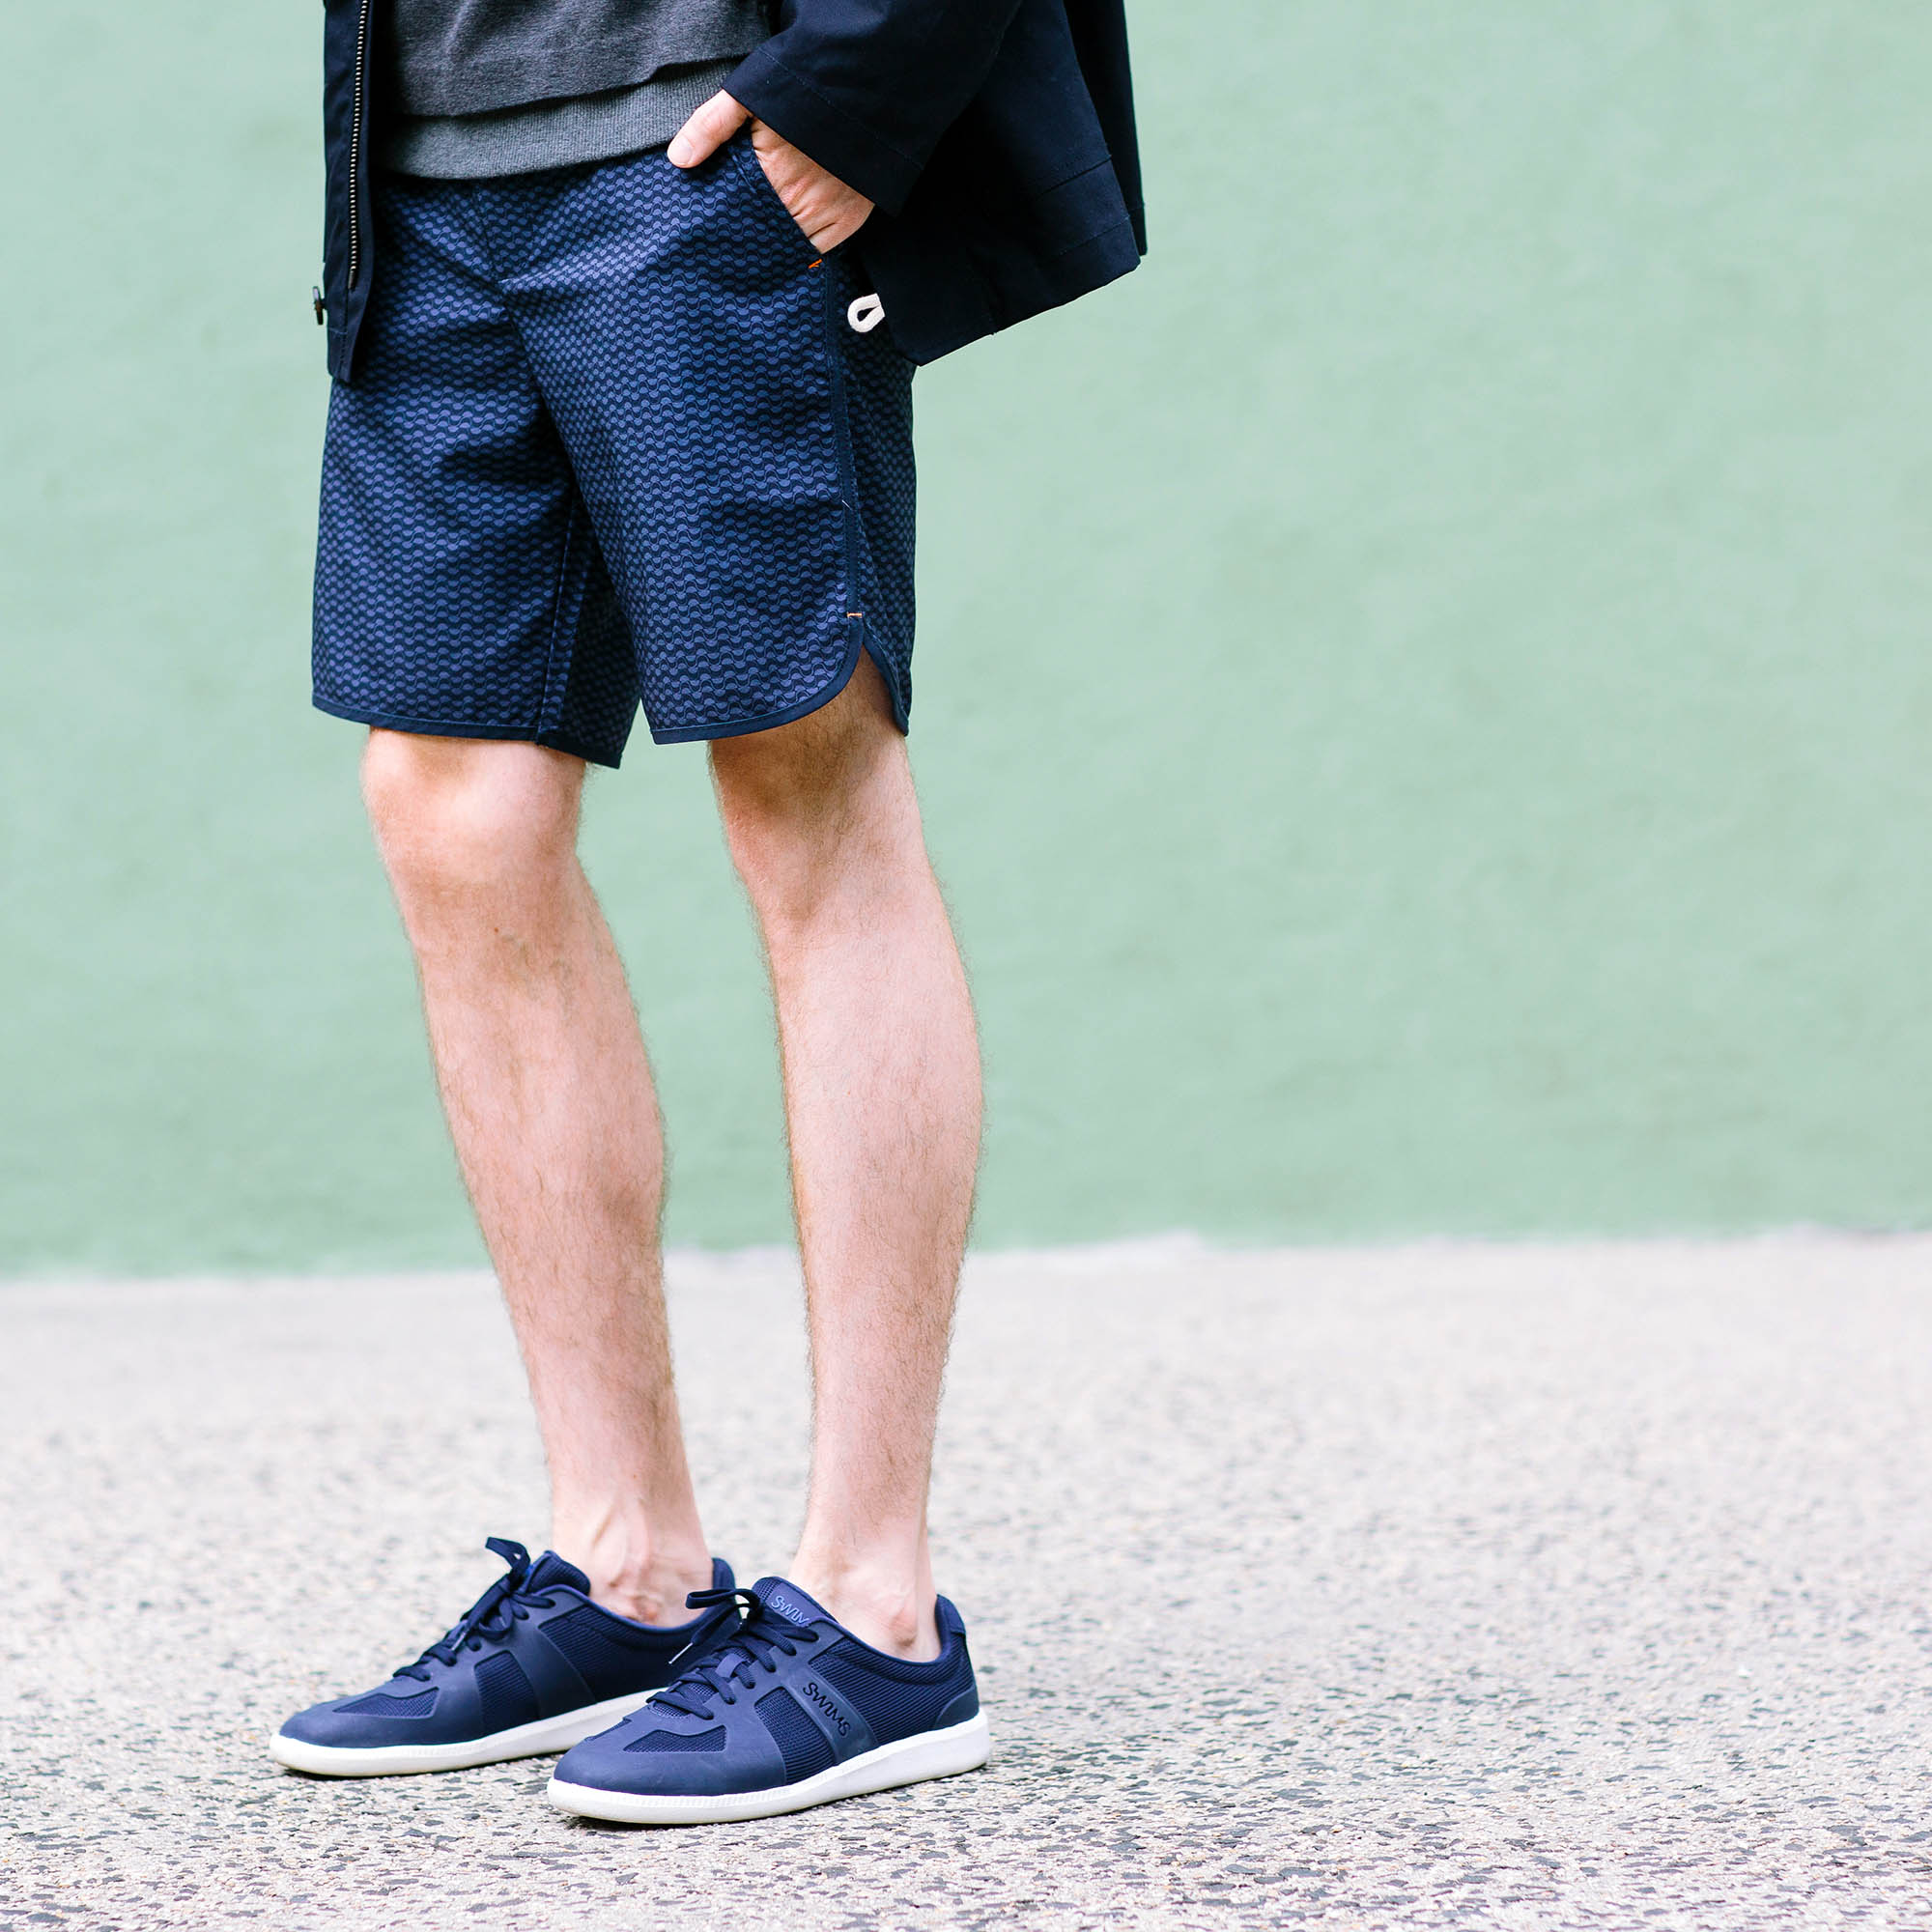 Swims-Shorts-Shoes